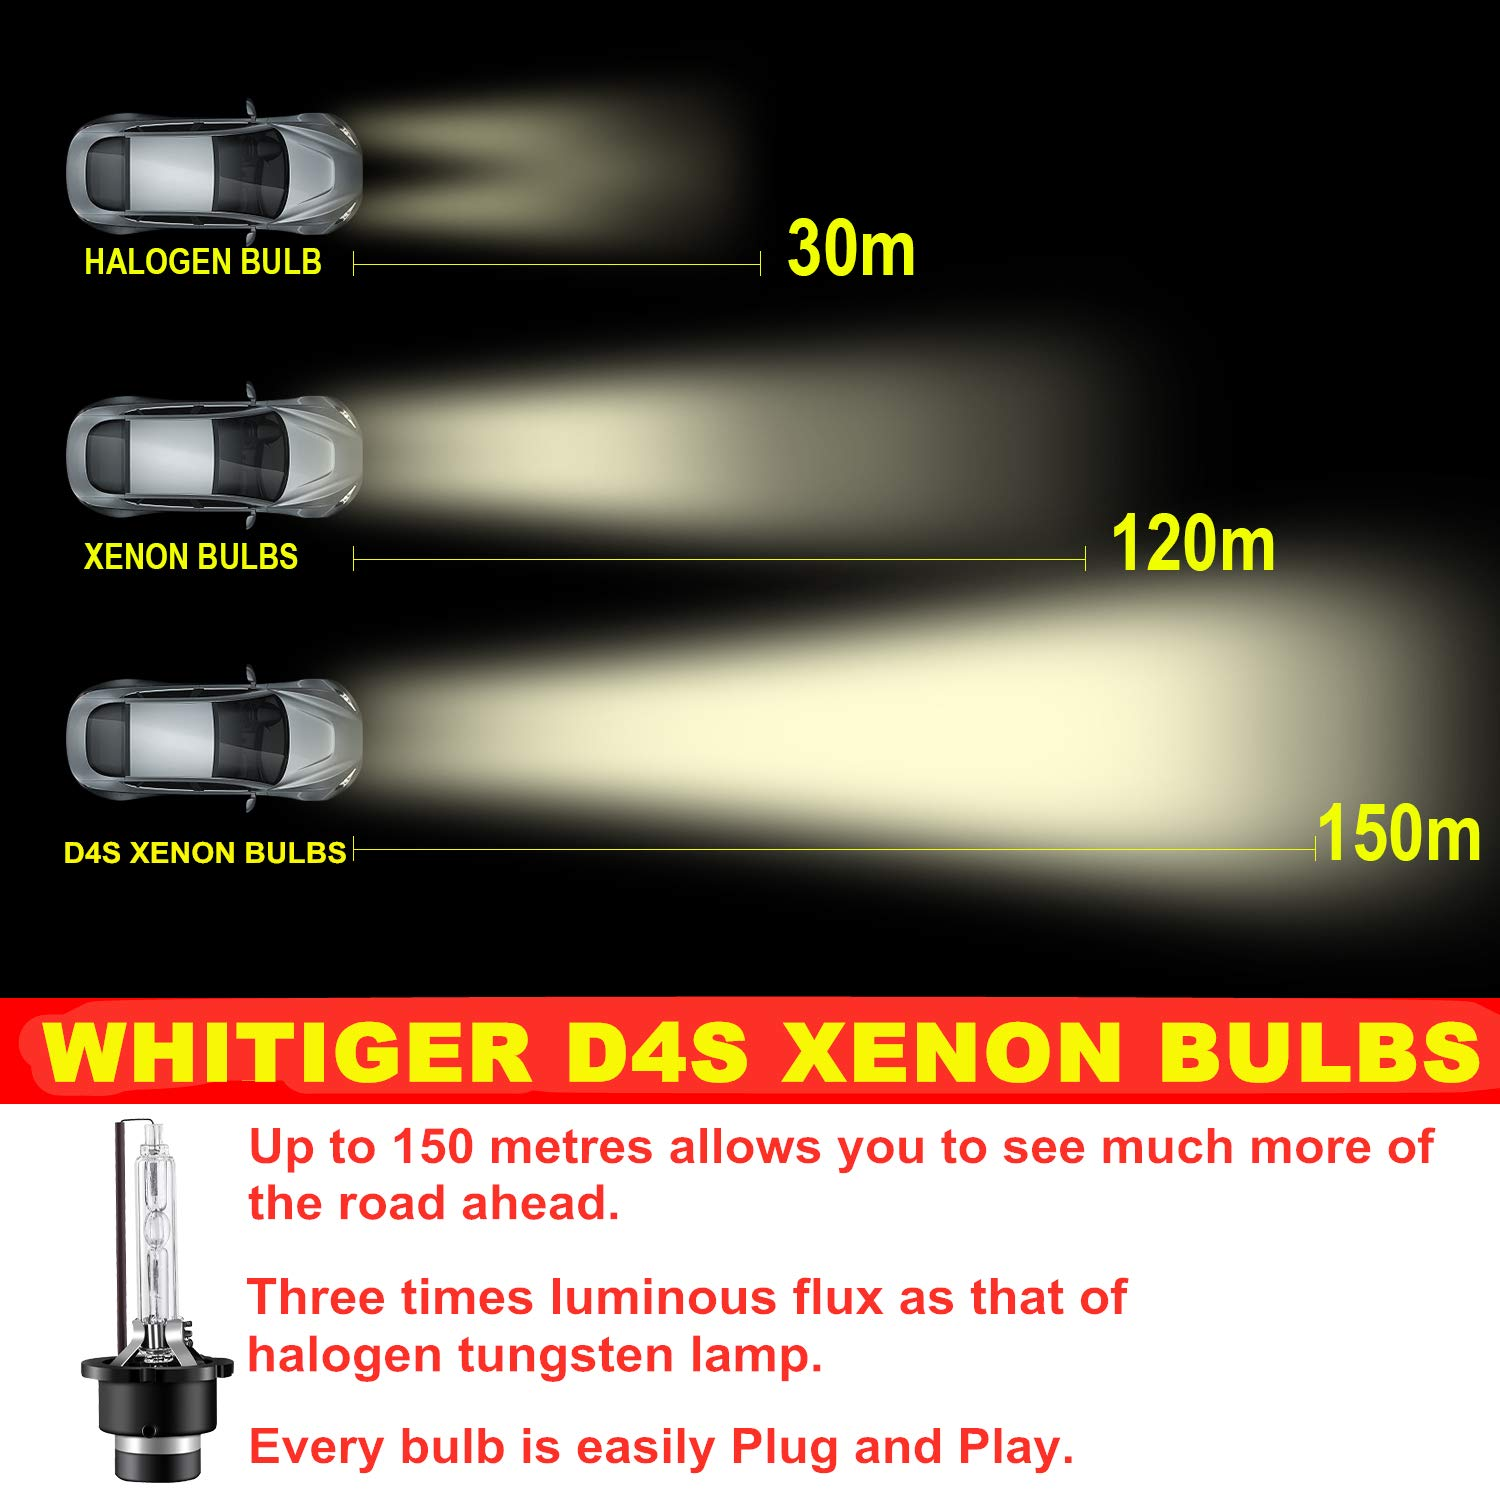 Pack of 2 35W 6000K 12V Diamond White OEM Replace for Halogen or LED Exterior Headlamp Bulbs Whitiger Car HID D2S Xenon Headlight Bulbs